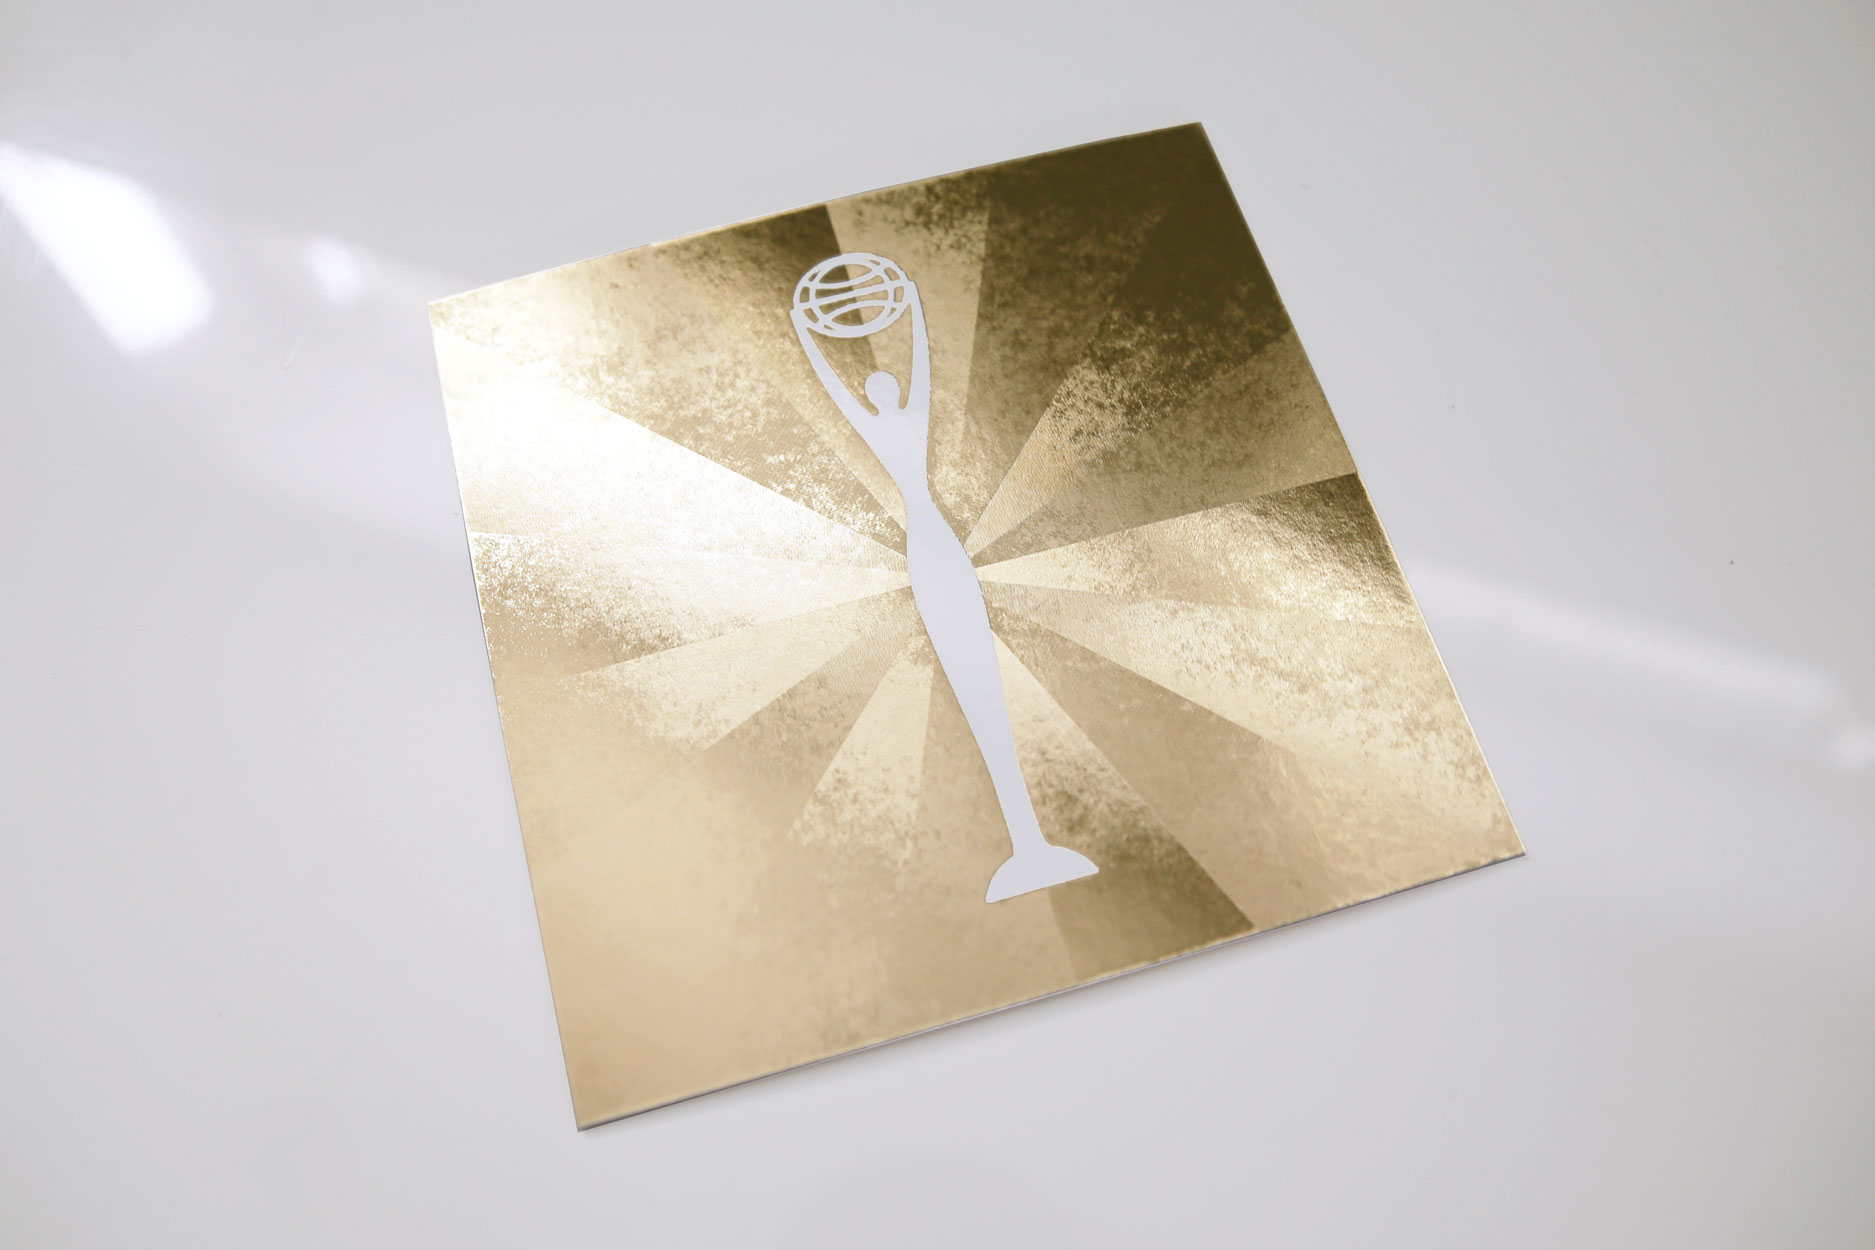 Clio Awards  \\Put the Clio Awards in the spotlight with this refractive foil invitation.